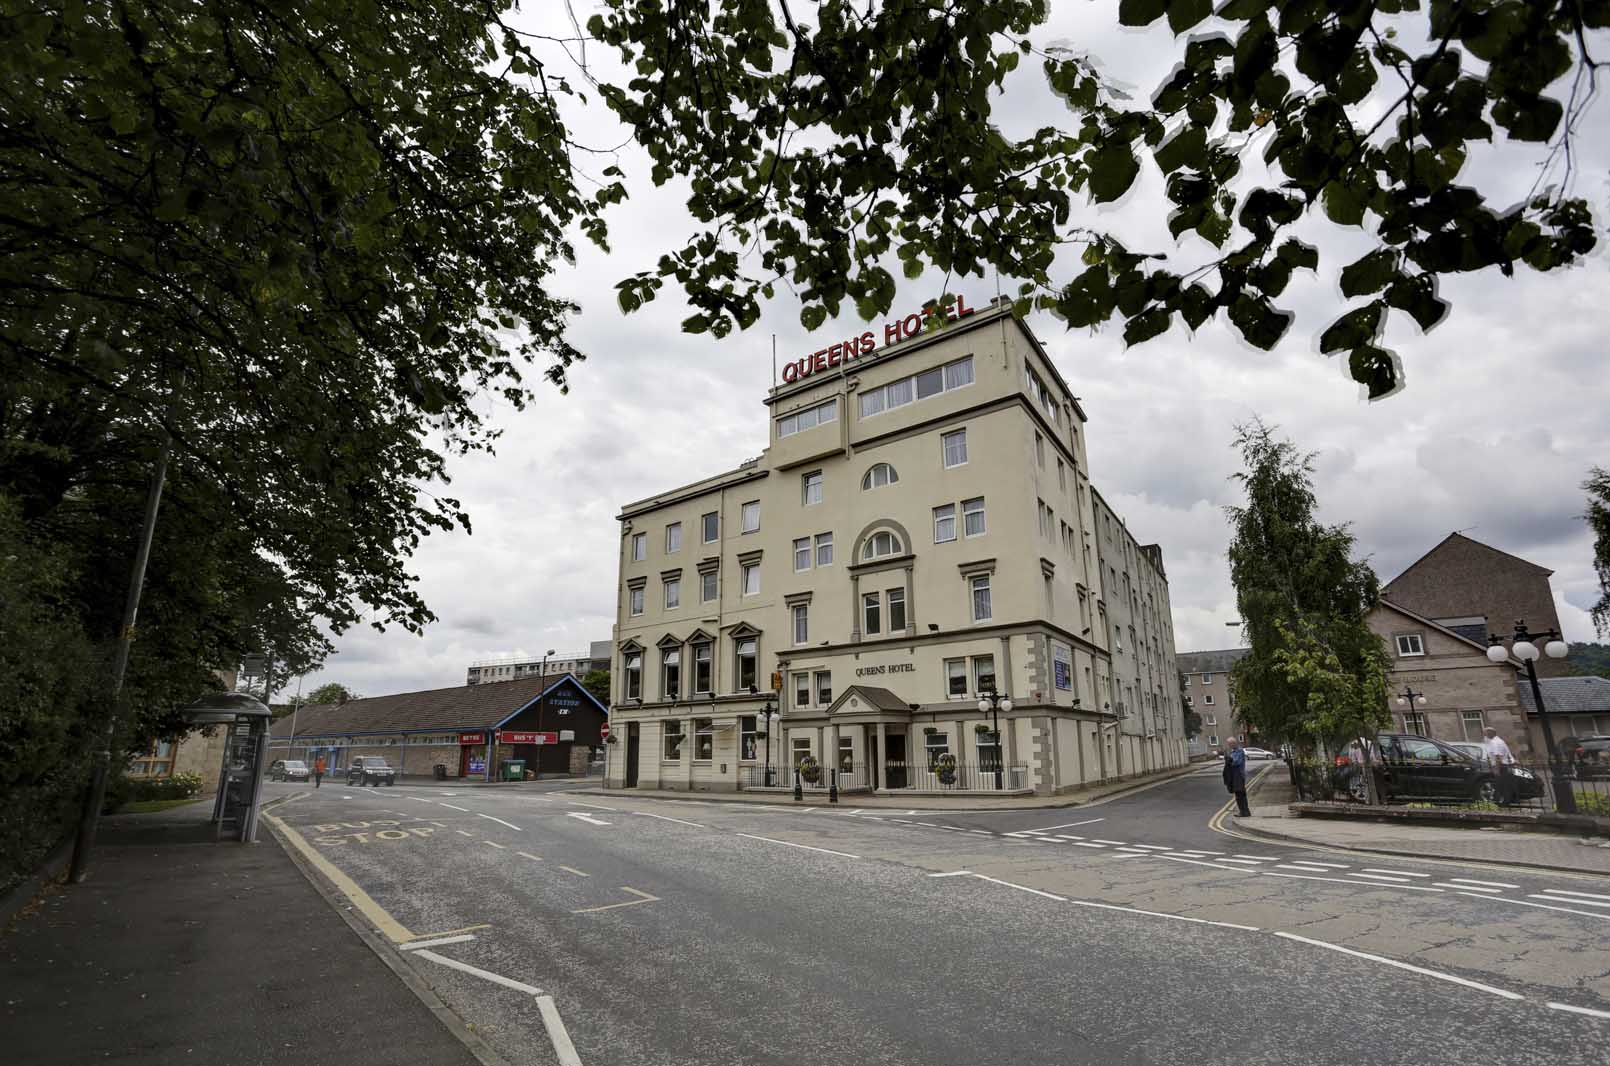 Best Western Queens Hotel Hotels In Perth Perthshire